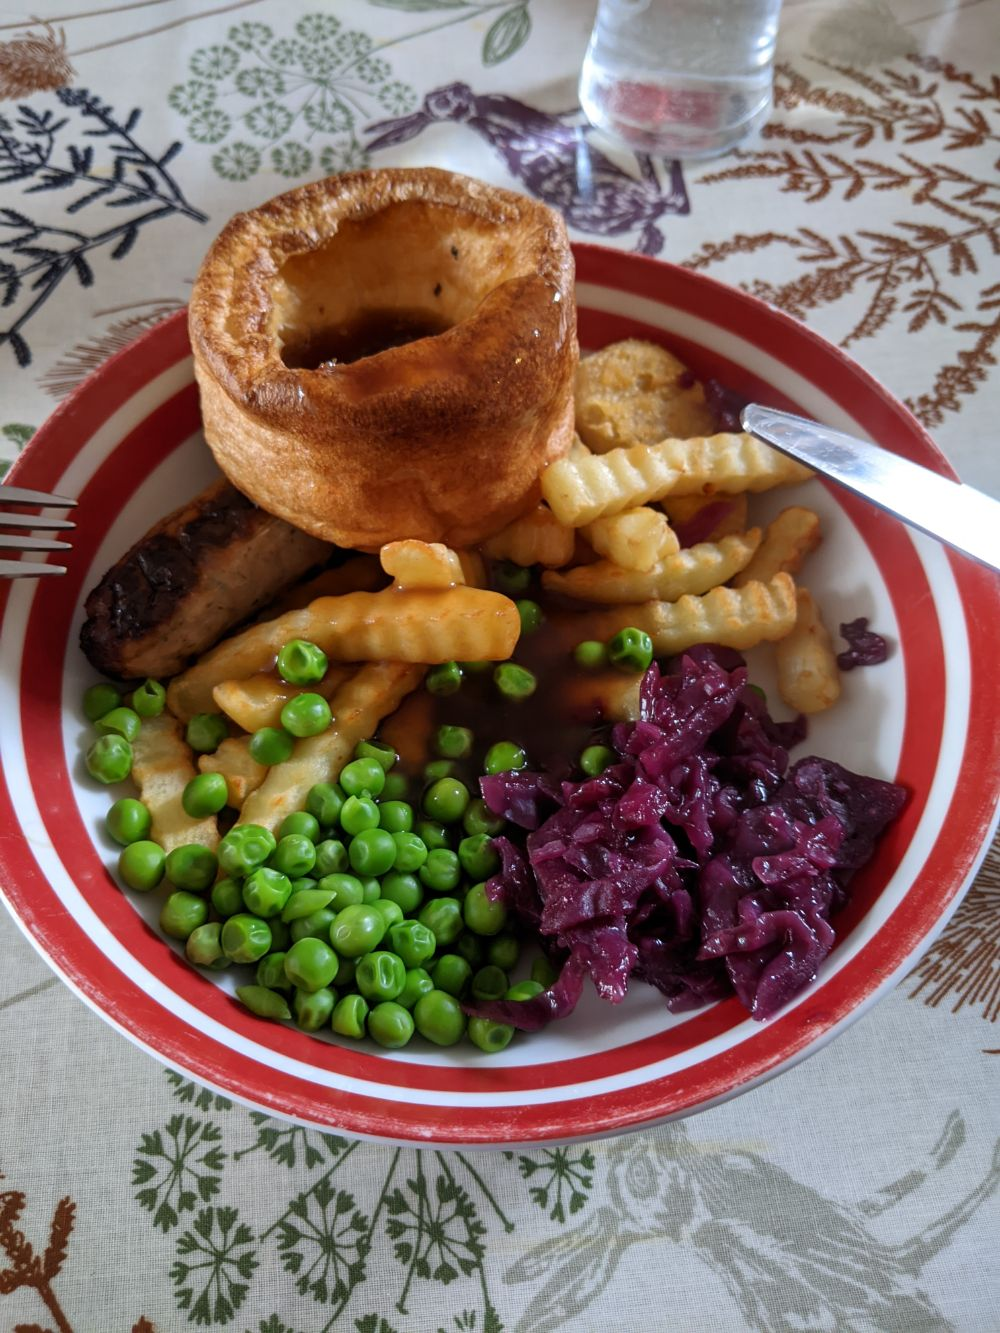 A dish with a beef dripping Yorkshire pudding, chips, a bacon and maple syrup sausage, red cabbage and peas, all covered in gravy